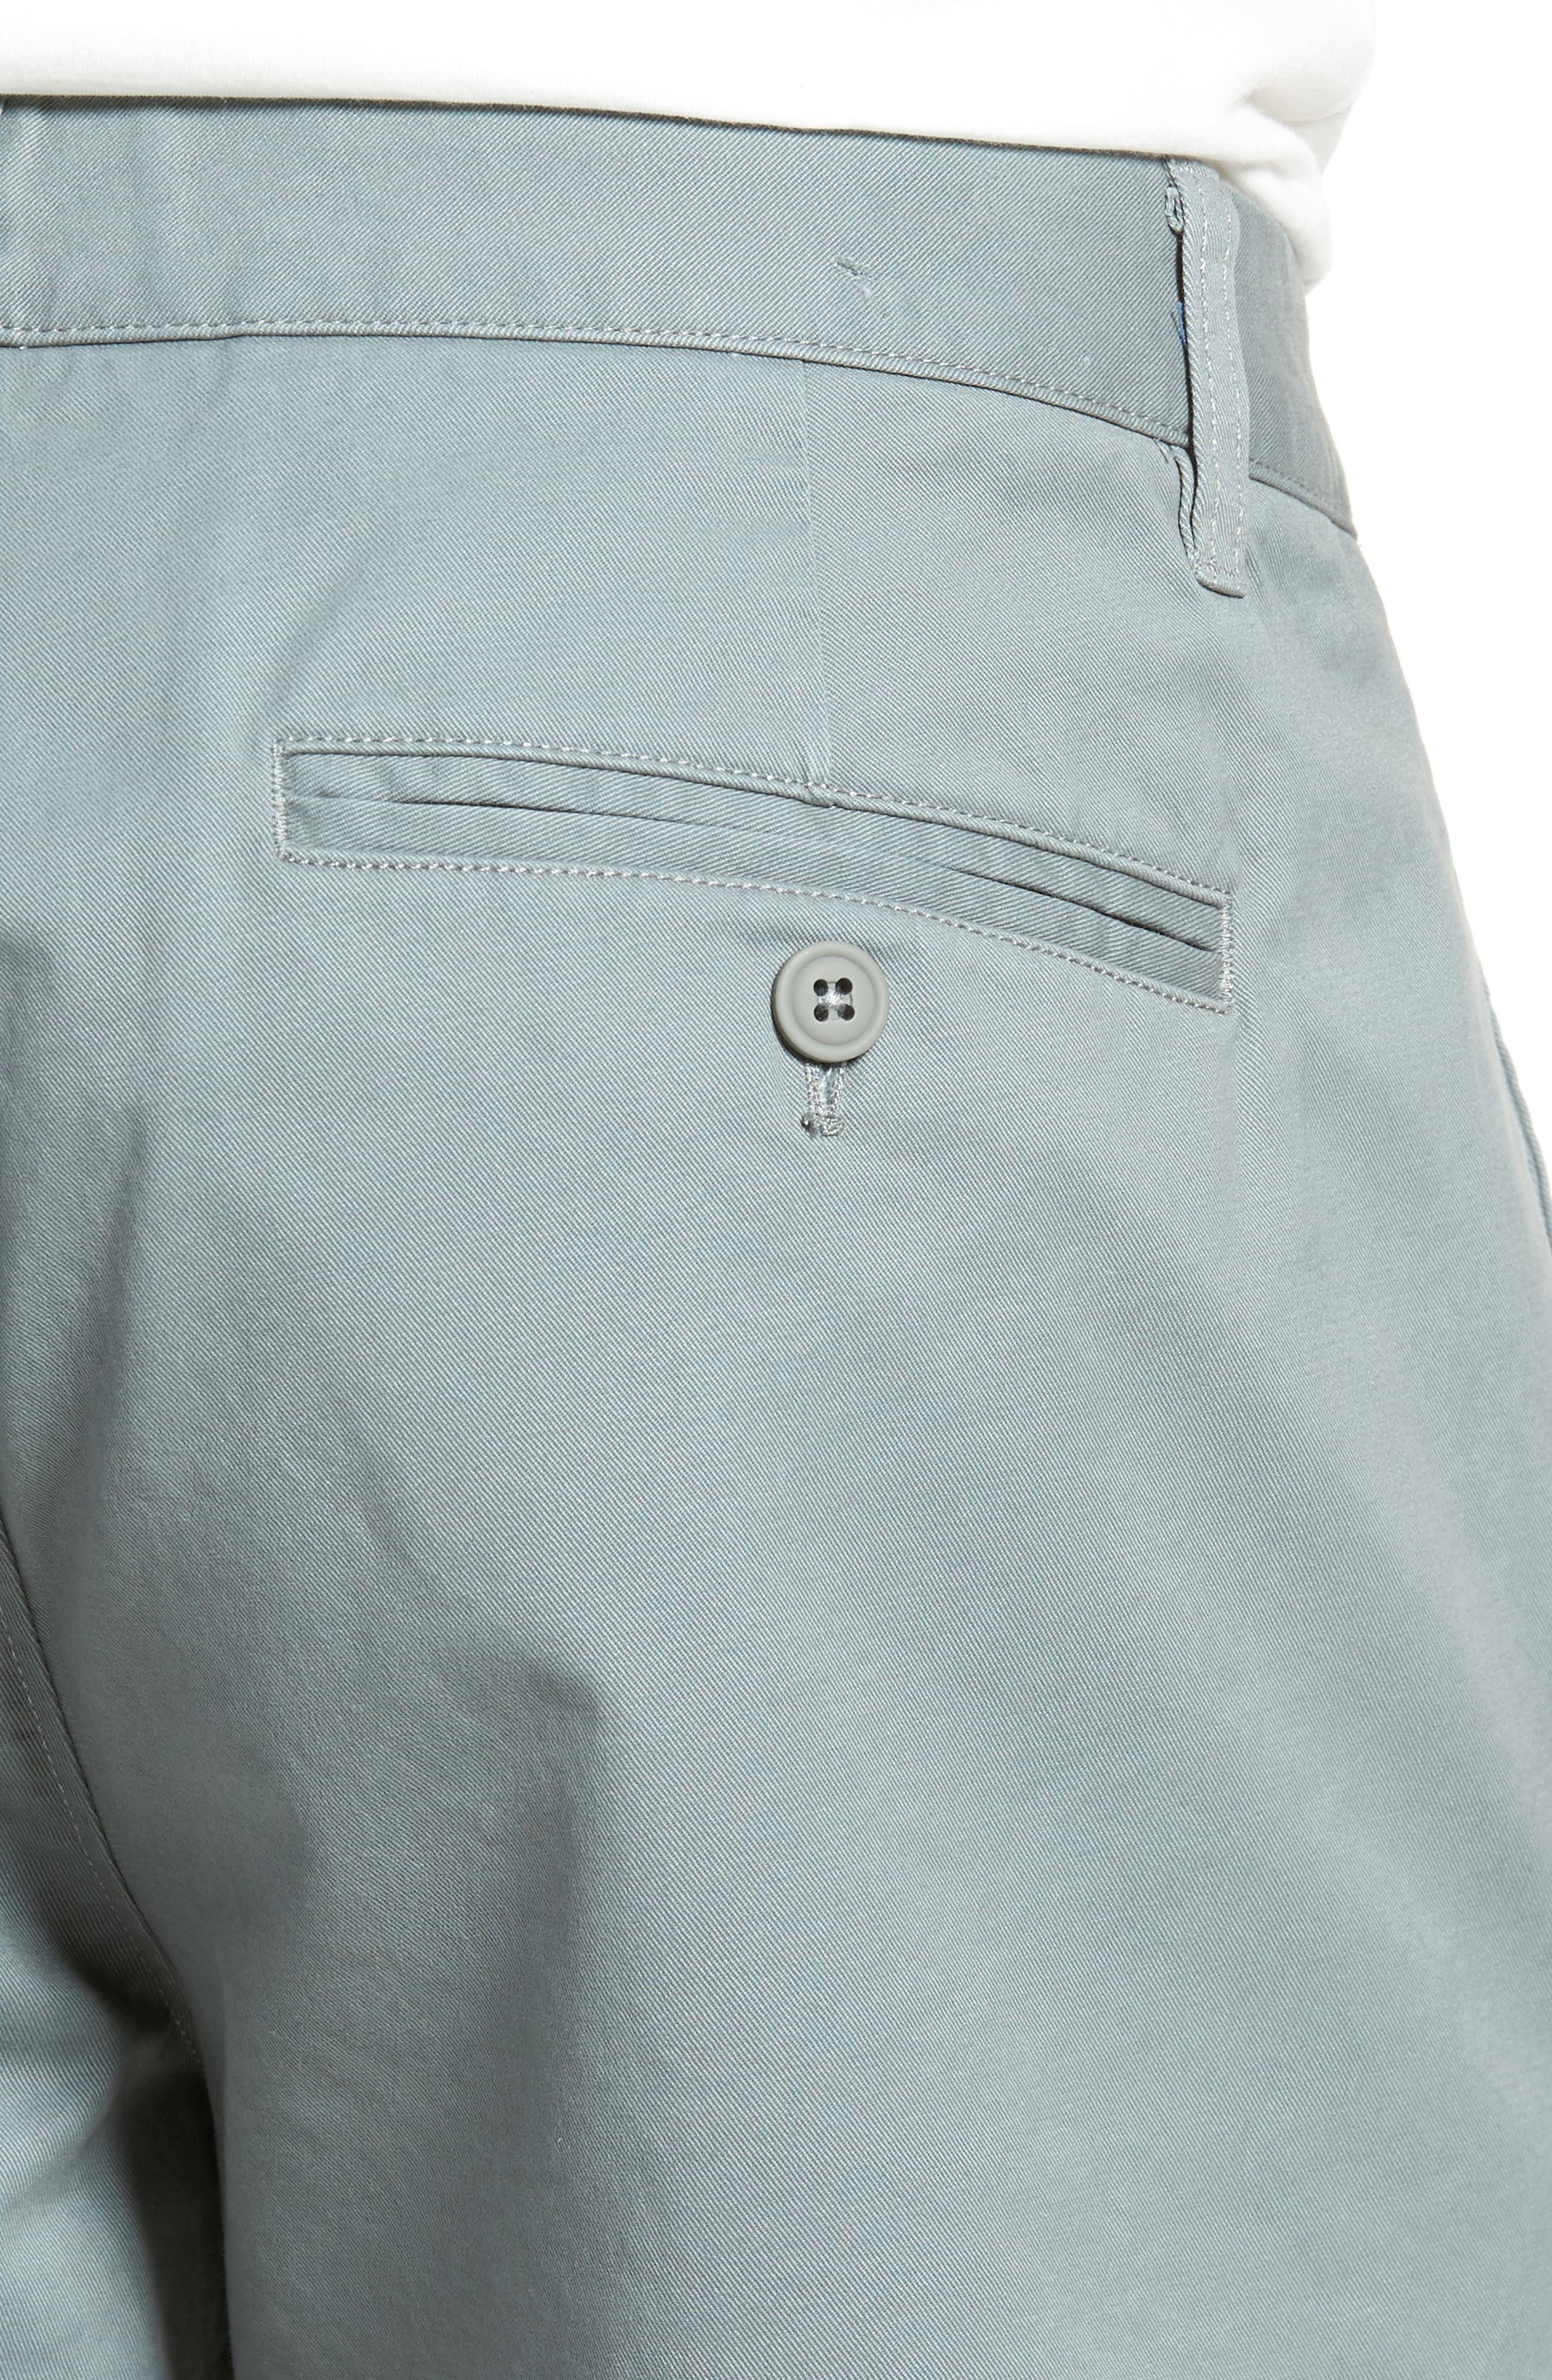 Stretch Washed Chino 5-Inch Shorts,                             Alternate thumbnail 88, color,